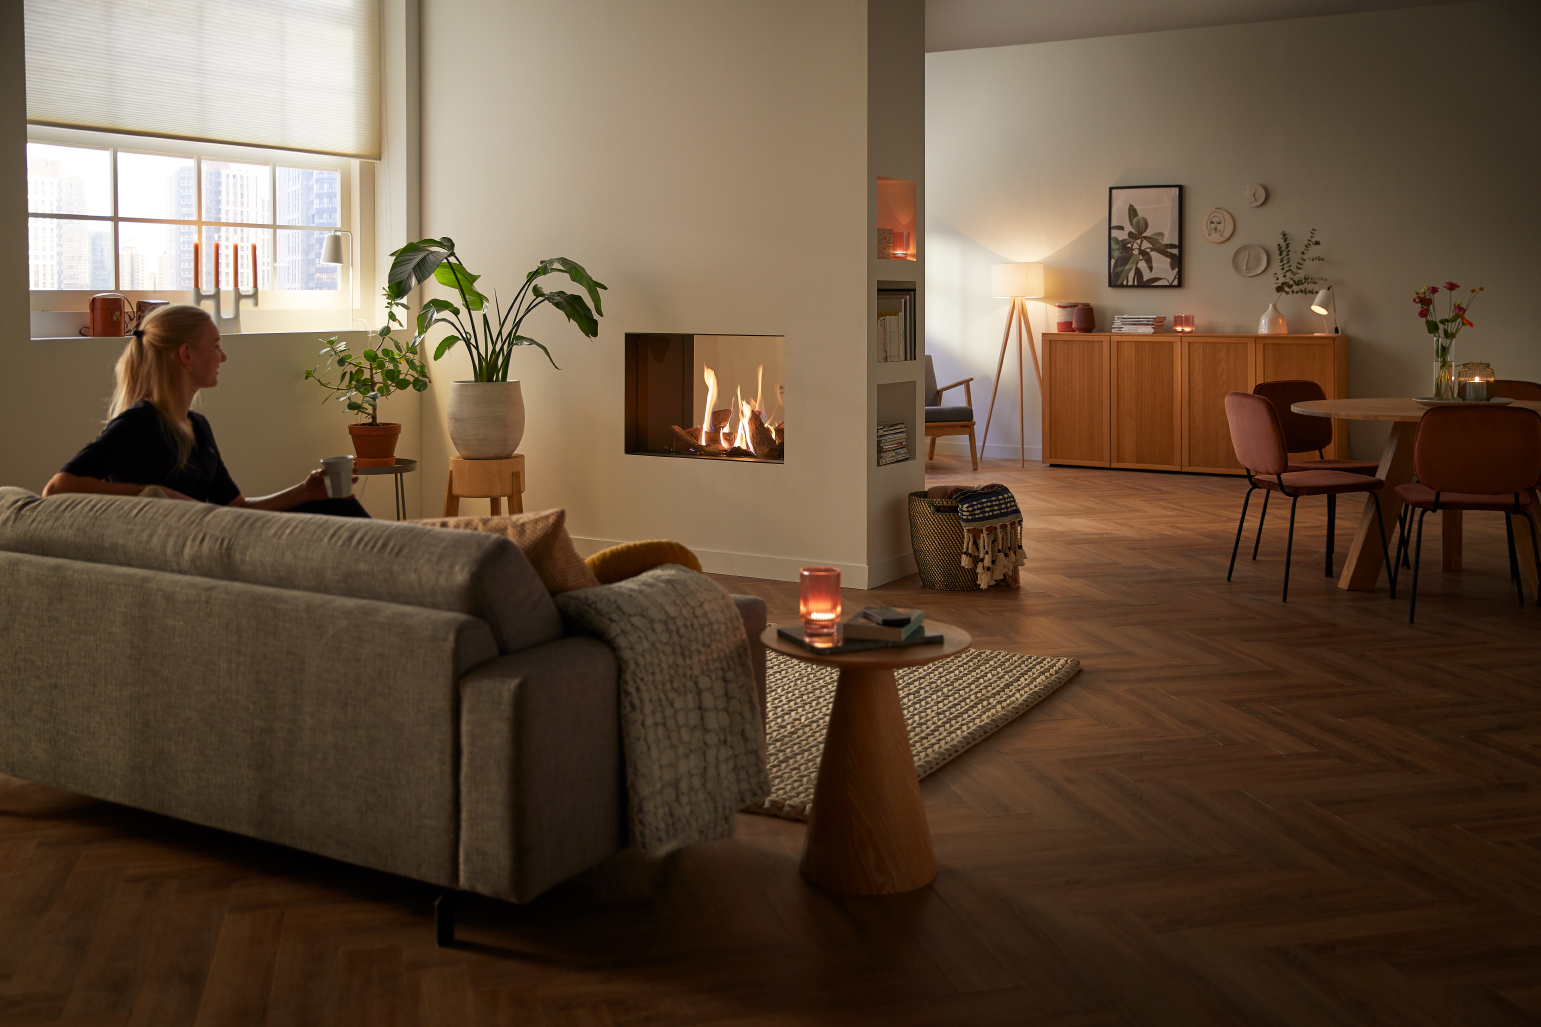 Why should I buy a gas fireplace?